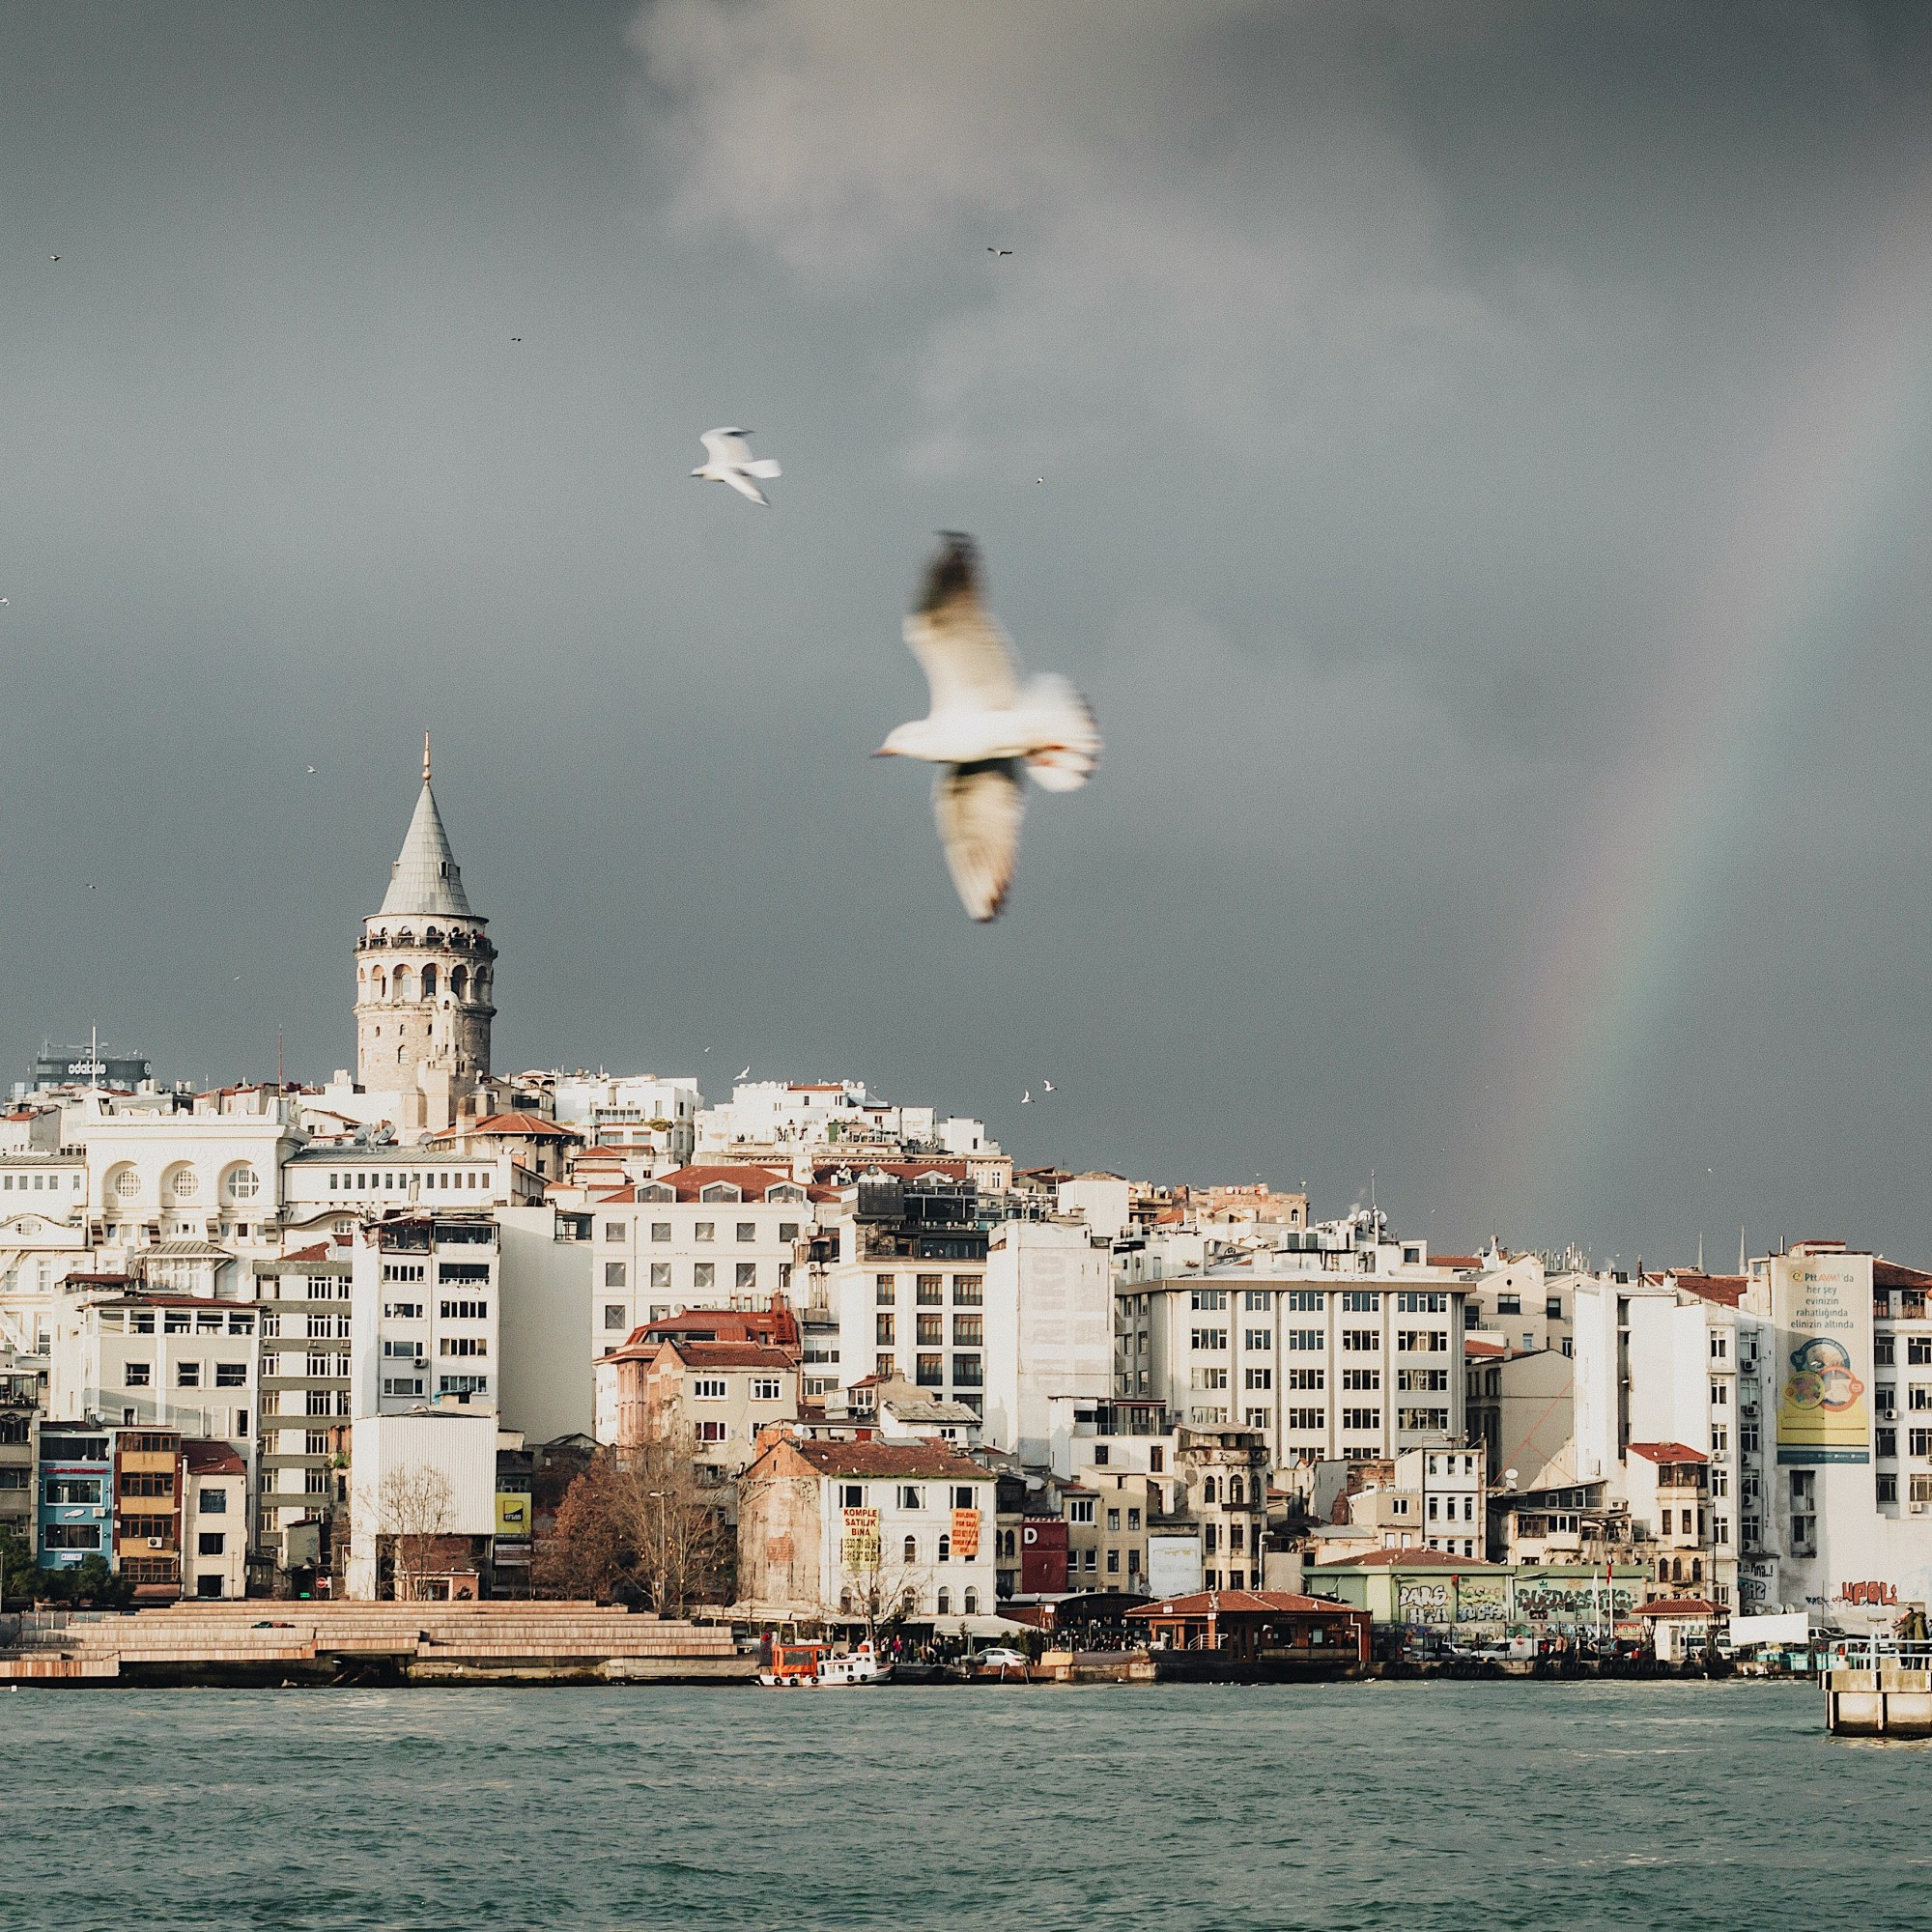 Illustrated by Sade - Rainbow, grey clouds and rain showers overlooking the Galata Tower, Istanbul, Turkey